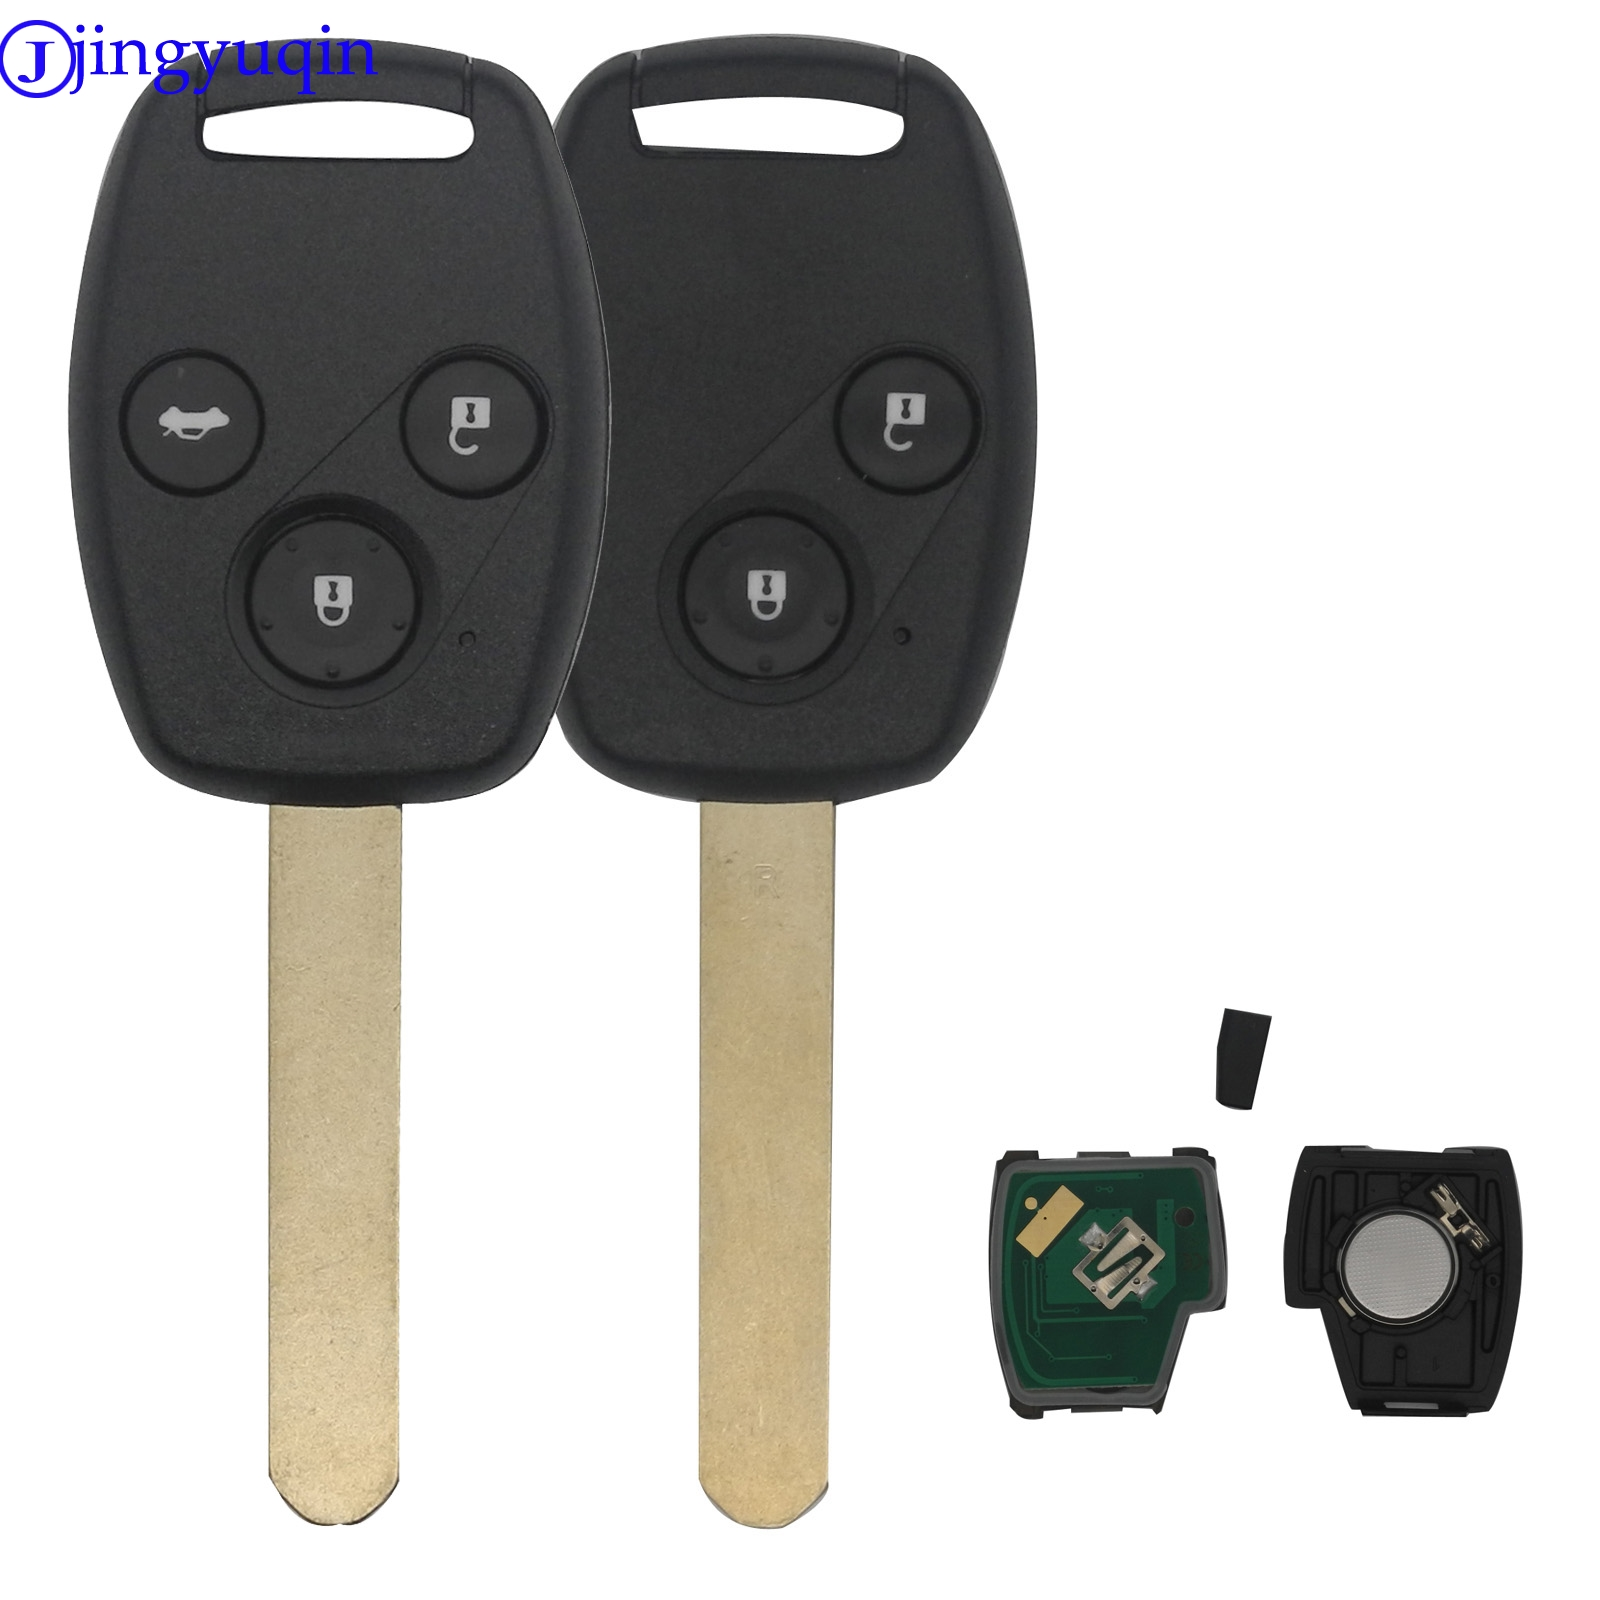 jingyuqin cut blade FSK 433MHZ With ID46 Chip 2/3 Buttons Remote Car Key Fob For Honda Cr-V Civic Insight Ridgeline Accordjingyuqin cut blade FSK 433MHZ With ID46 Chip 2/3 Buttons Remote Car Key Fob For Honda Cr-V Civic Insight Ridgeline Accord